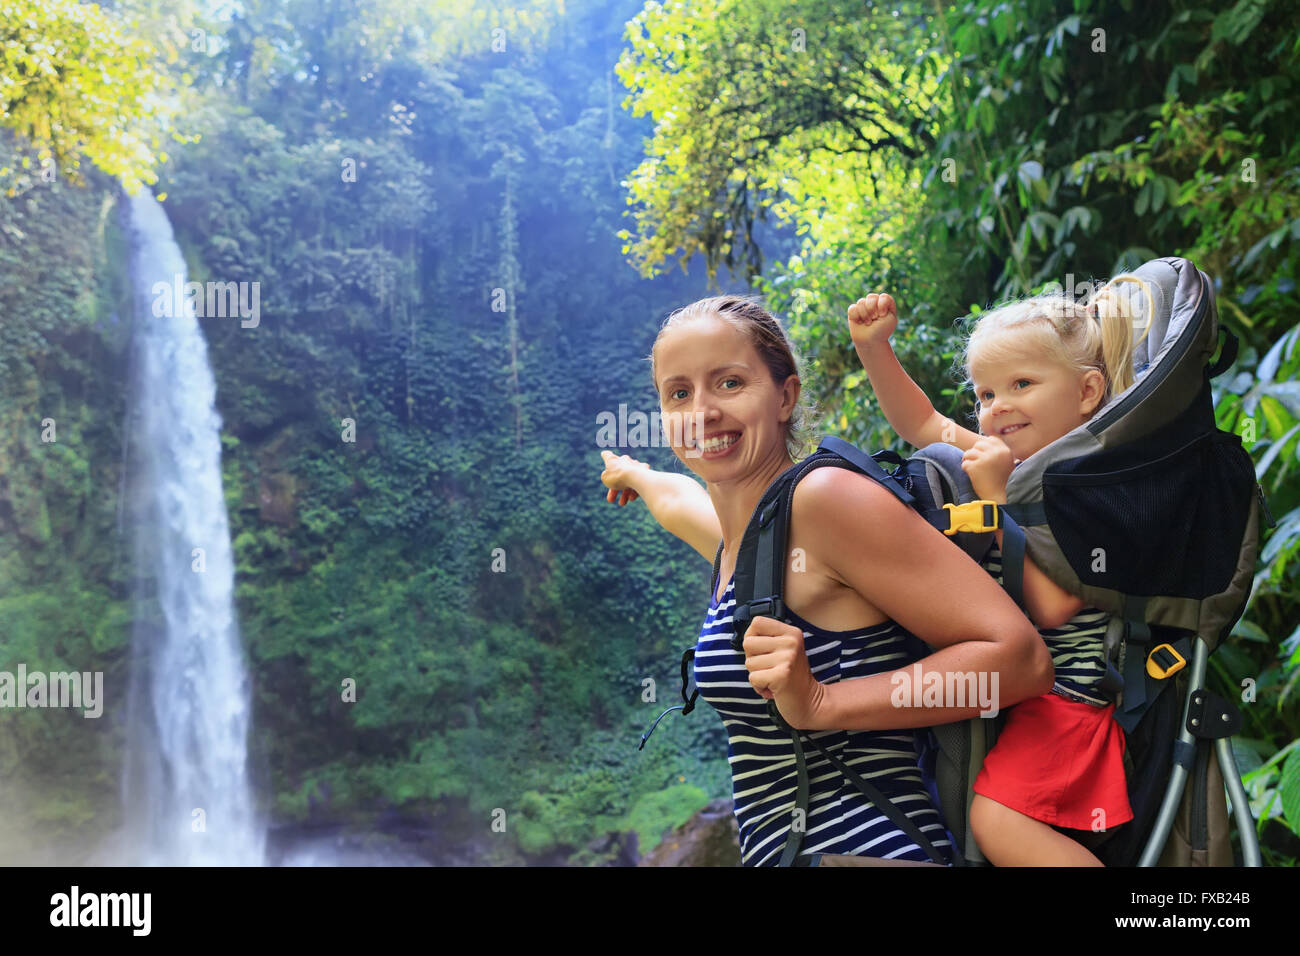 Mother hold baby girl on back in carrying backpack walking in waterfall canyon. - Stock Image